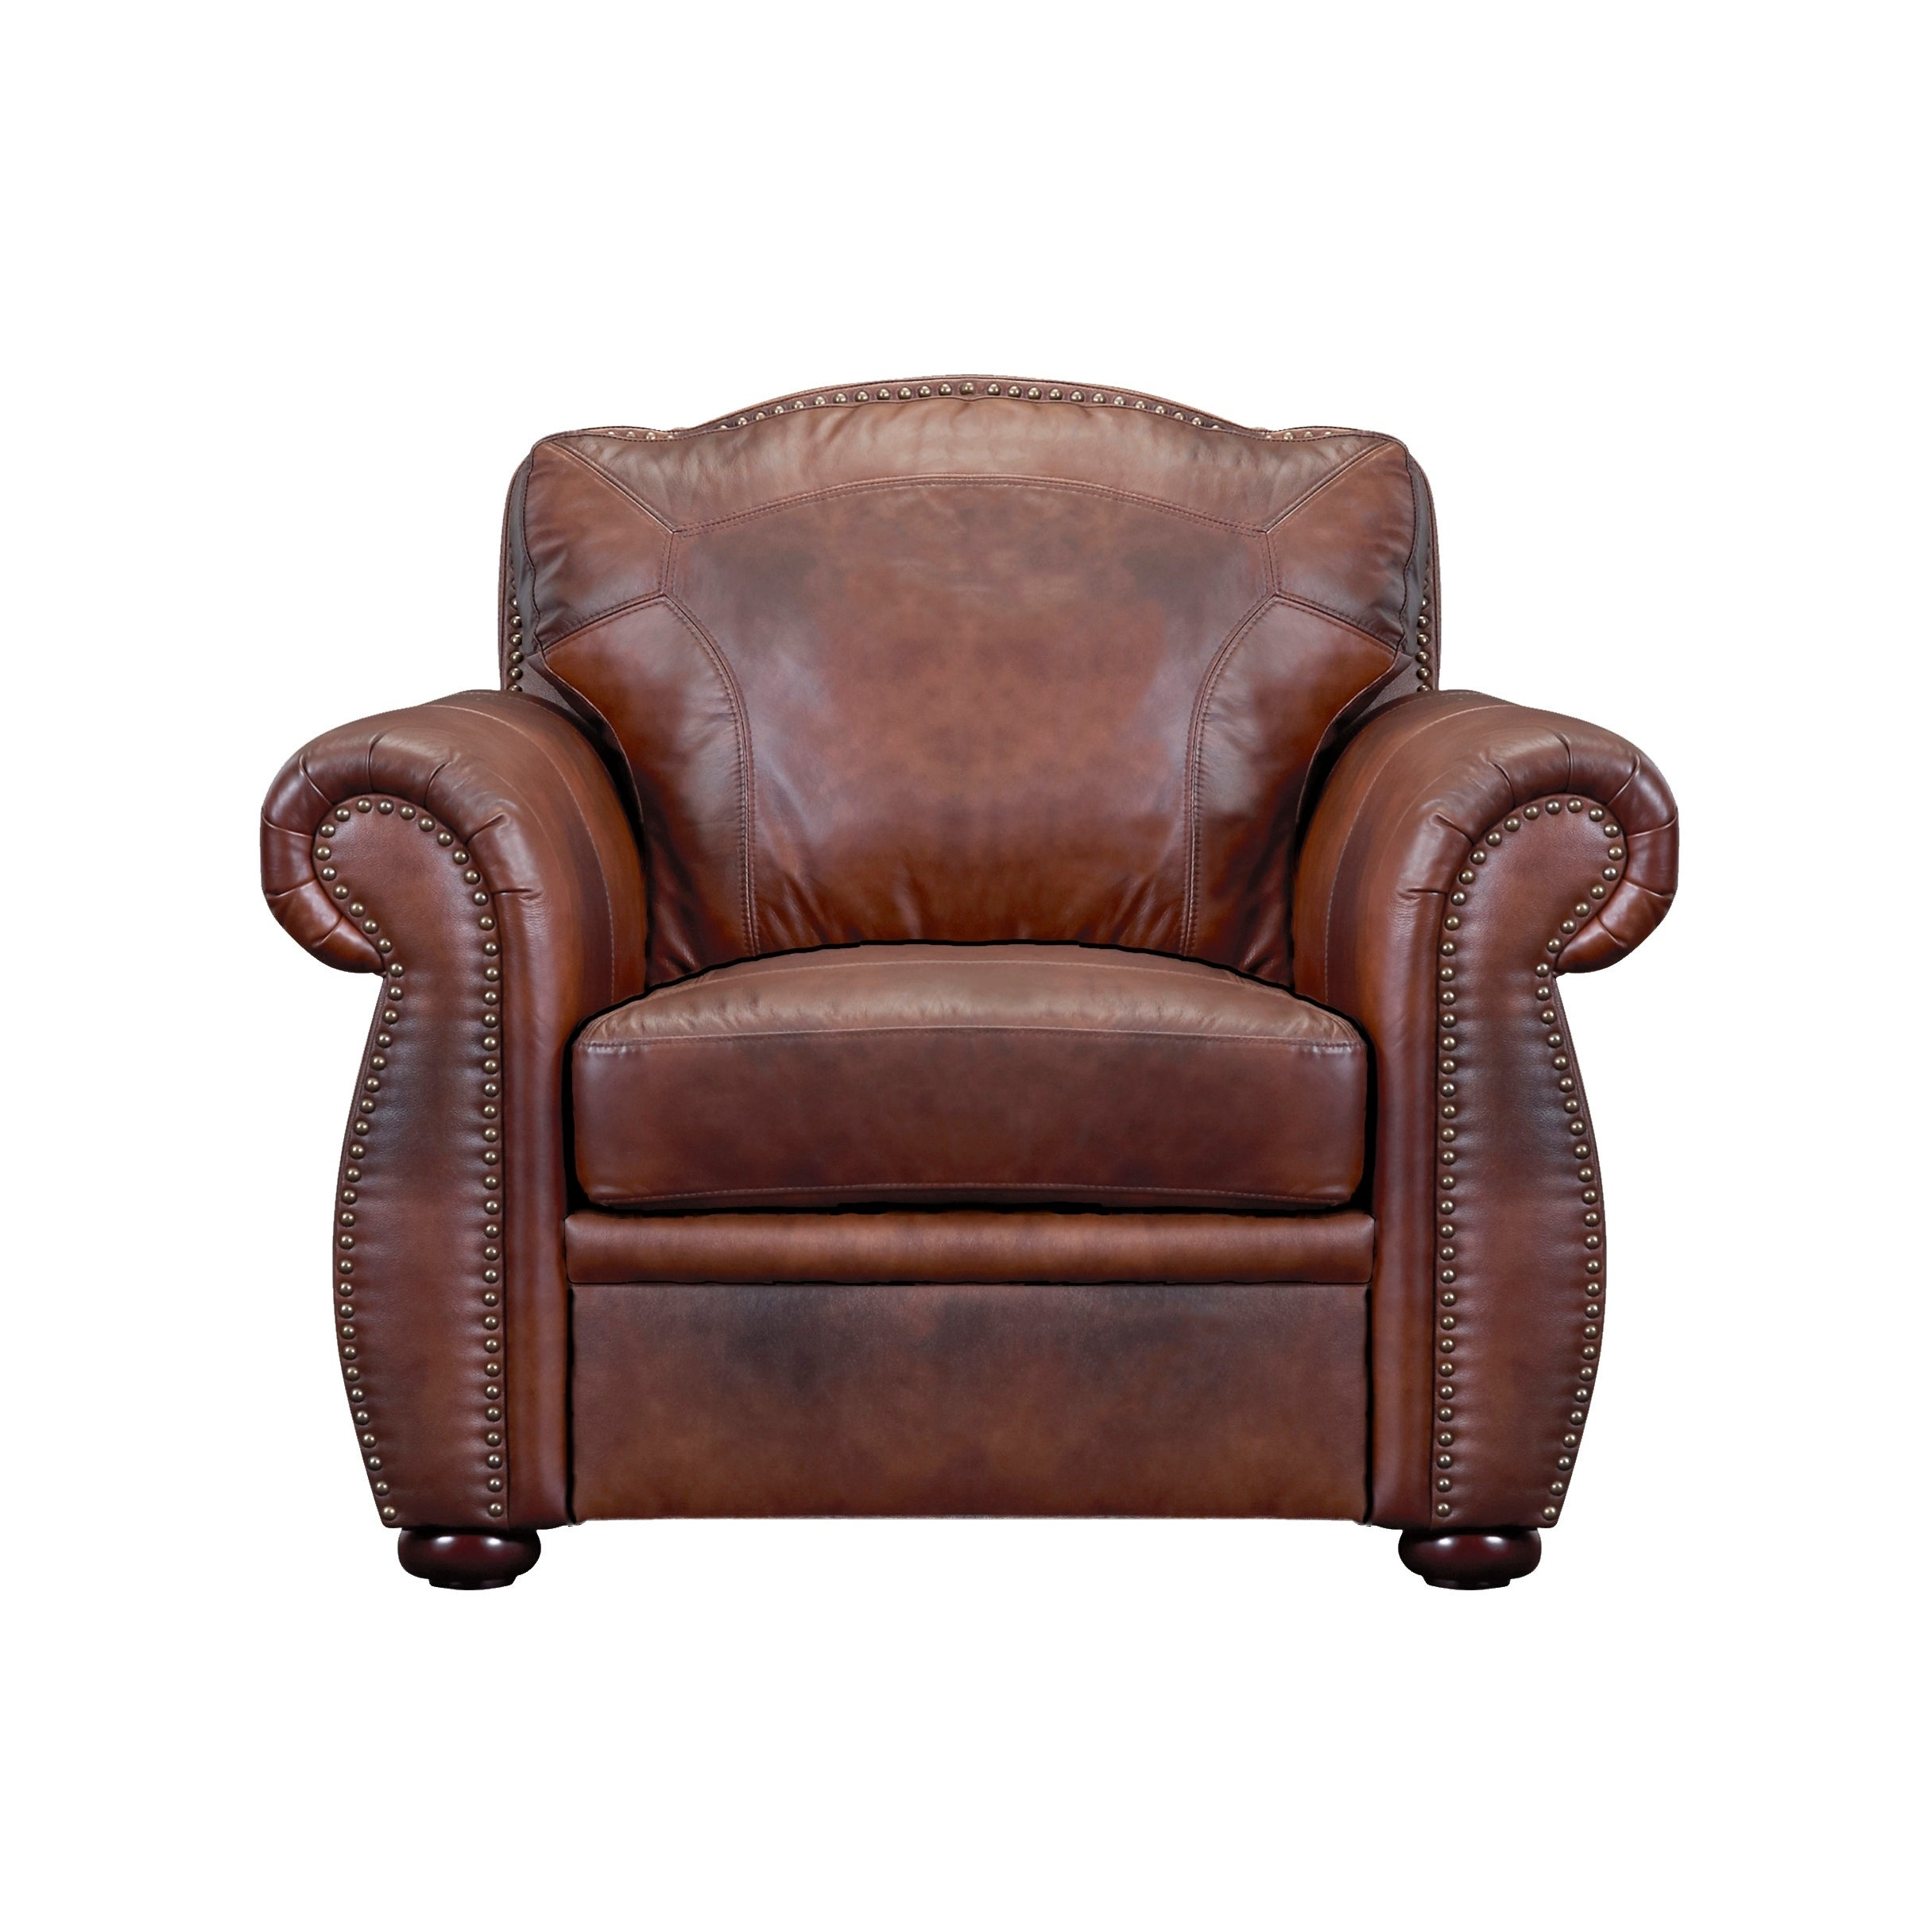 Southwestern Furniture Our Best Home Goods Deals Online At